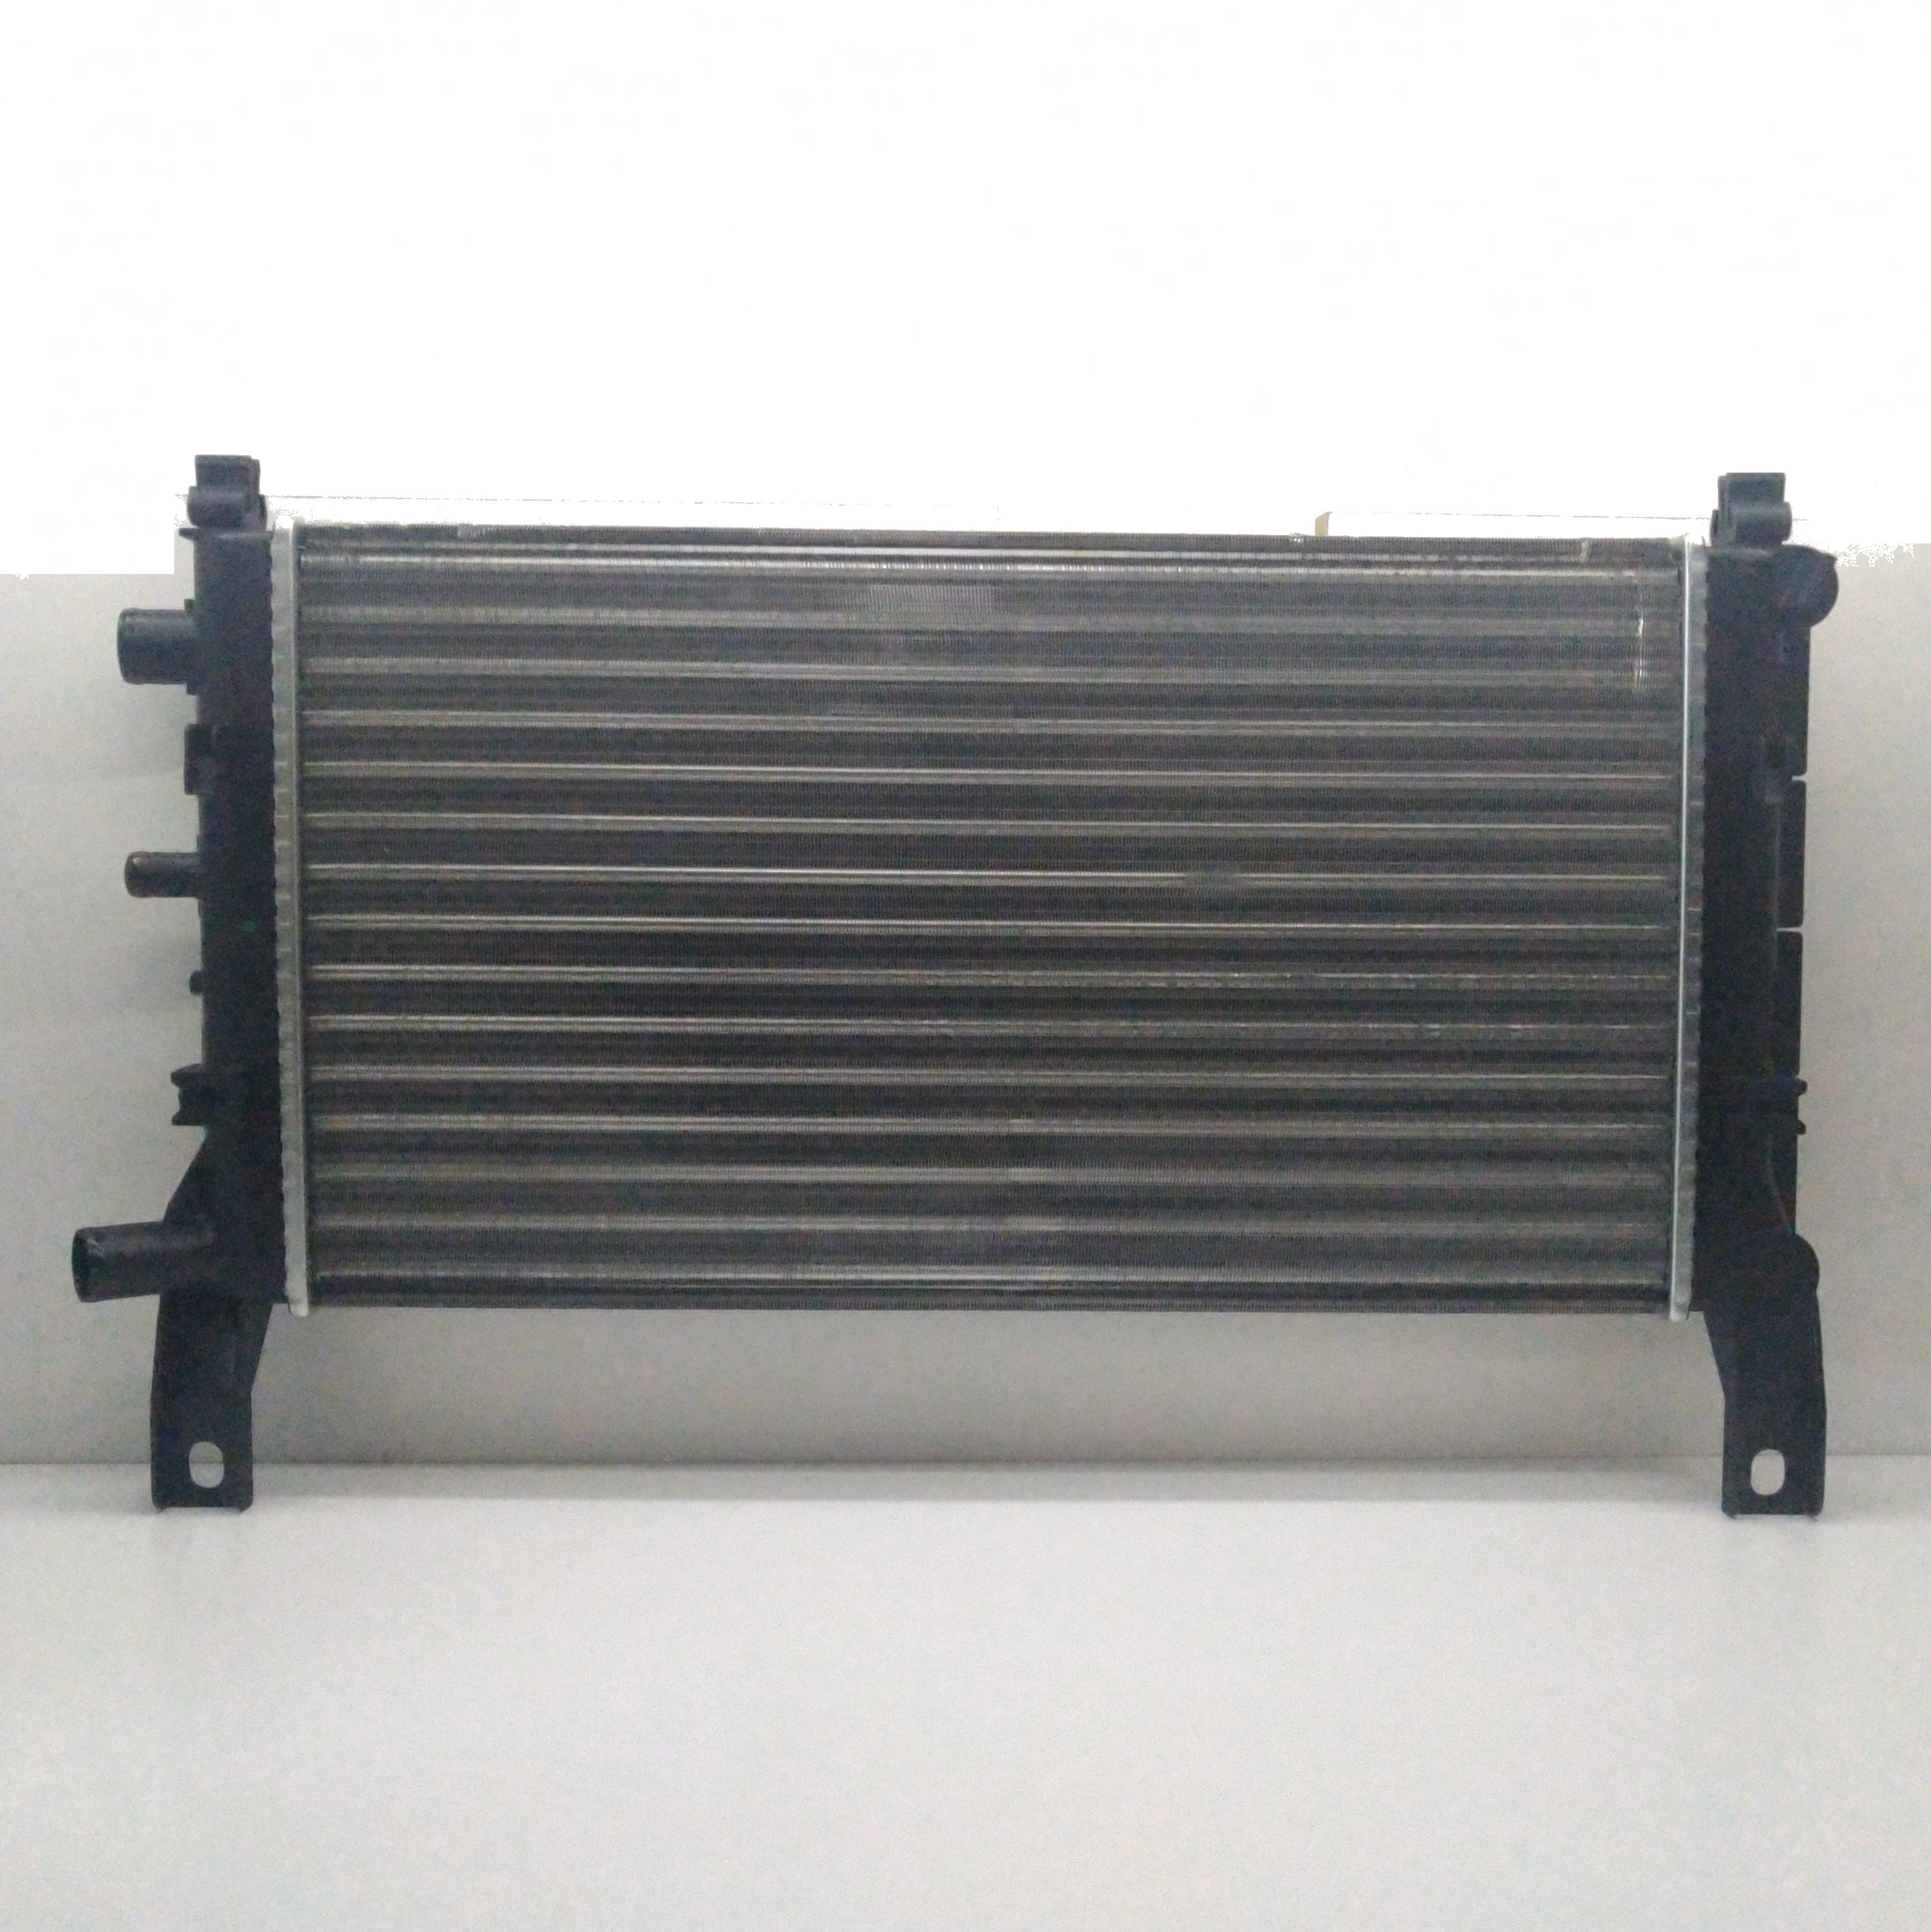 FORD FIESTA ENGINE COOLING RADIATOR FOR 1004038